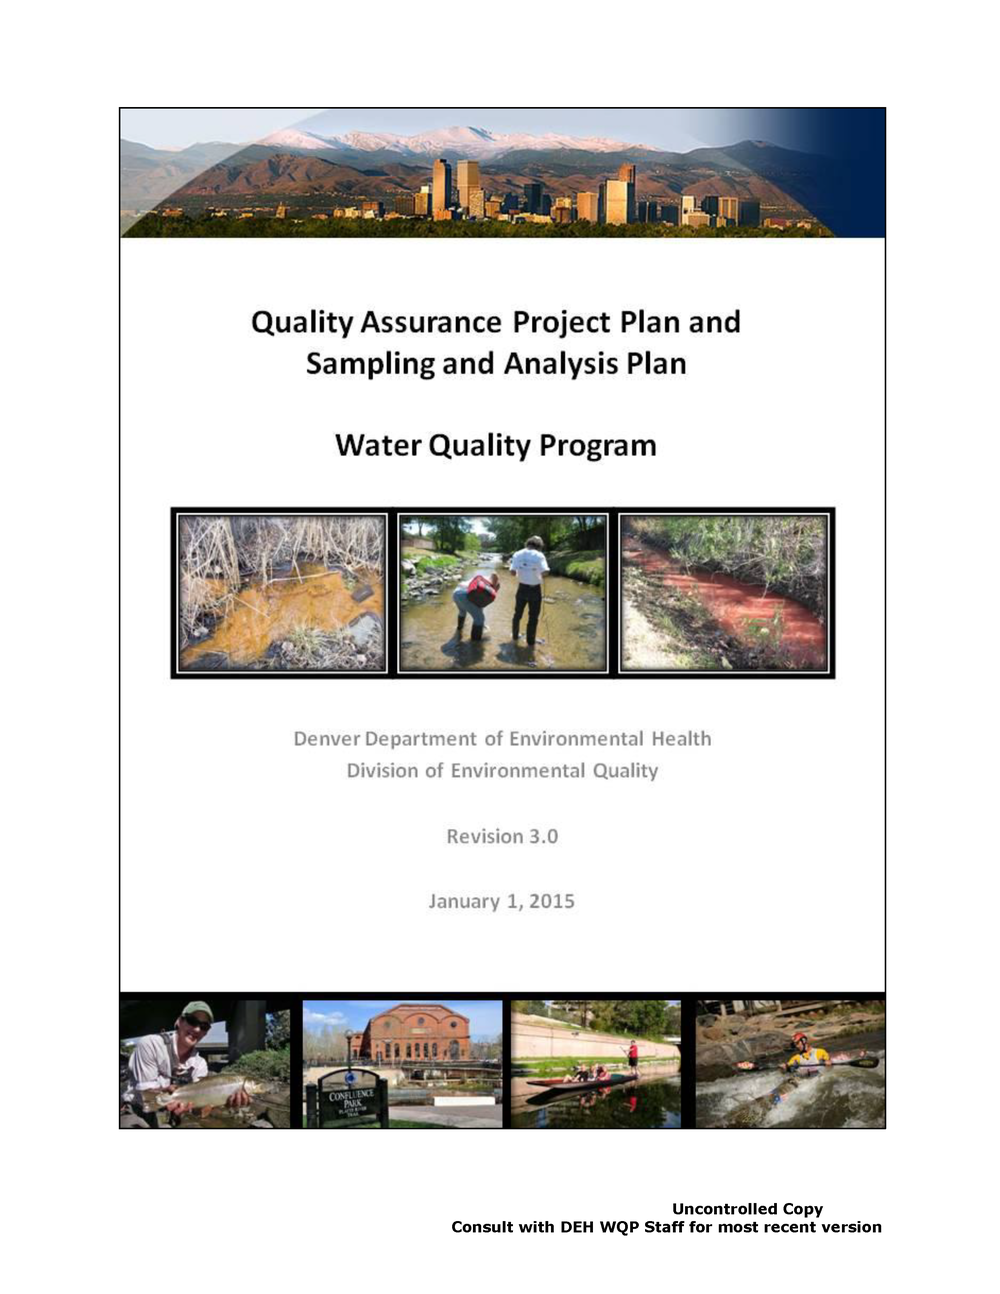 Water Quality Program